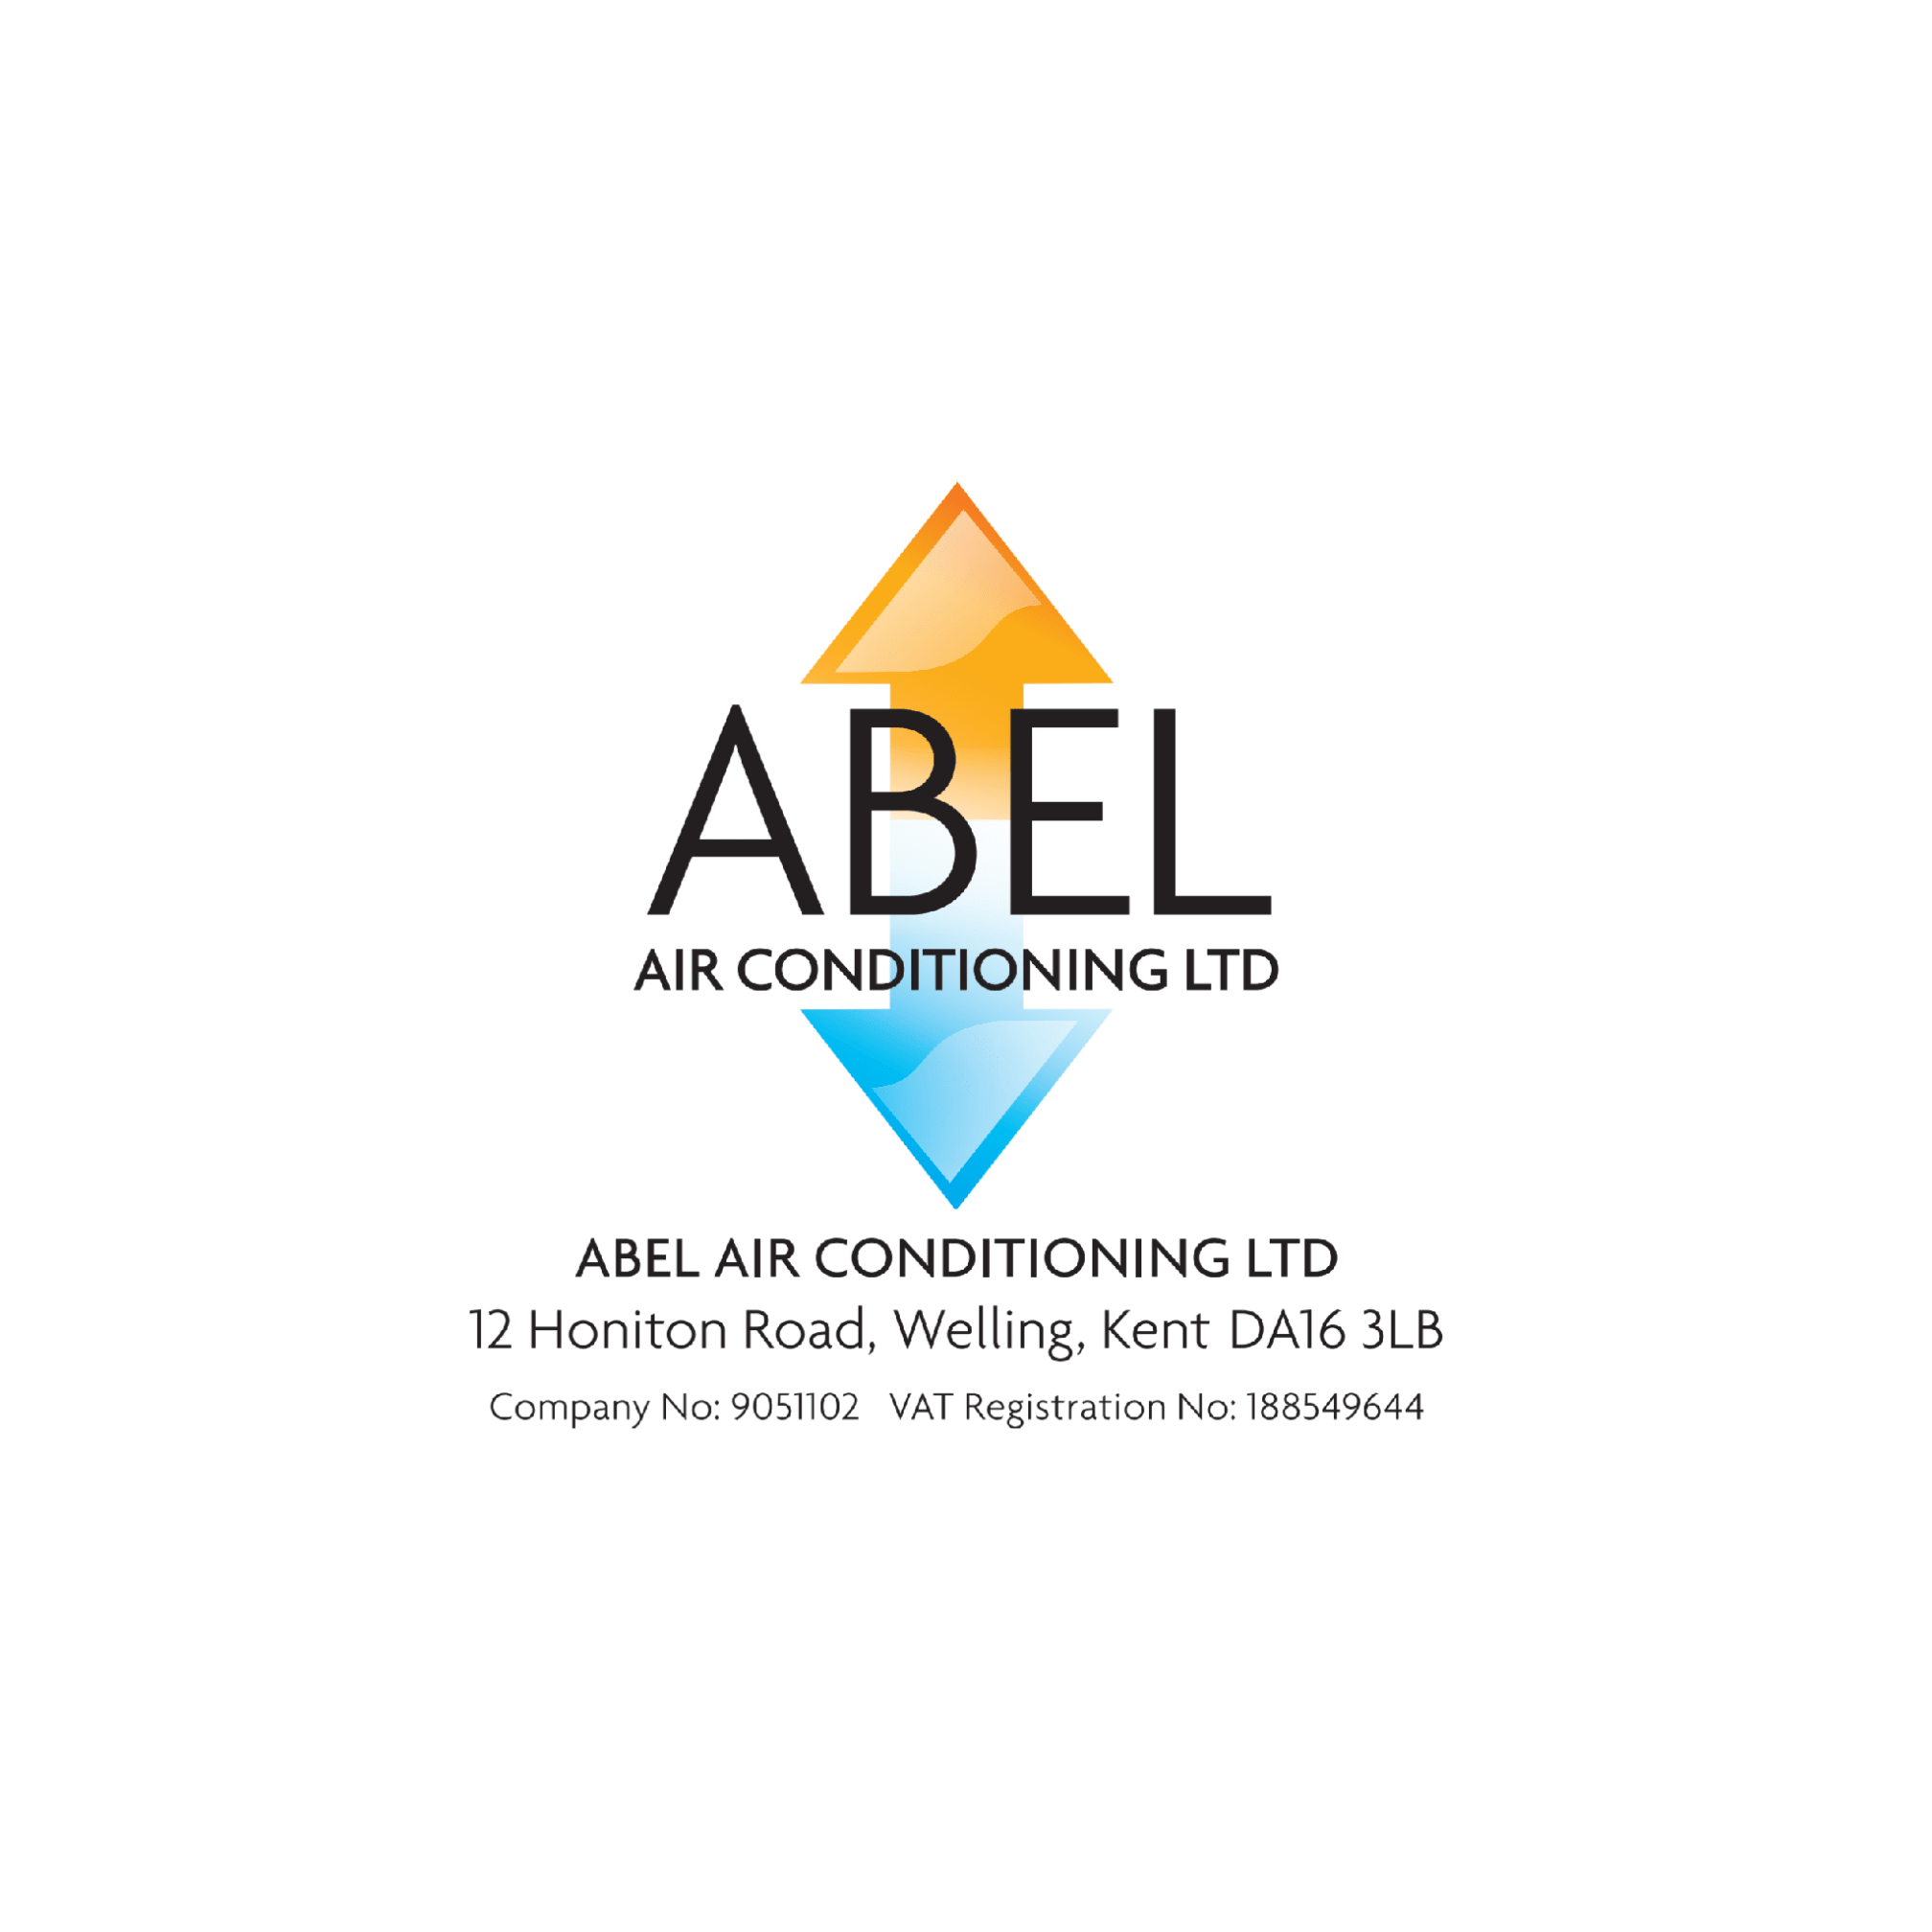 image of Abel Air Conditioning Ltd